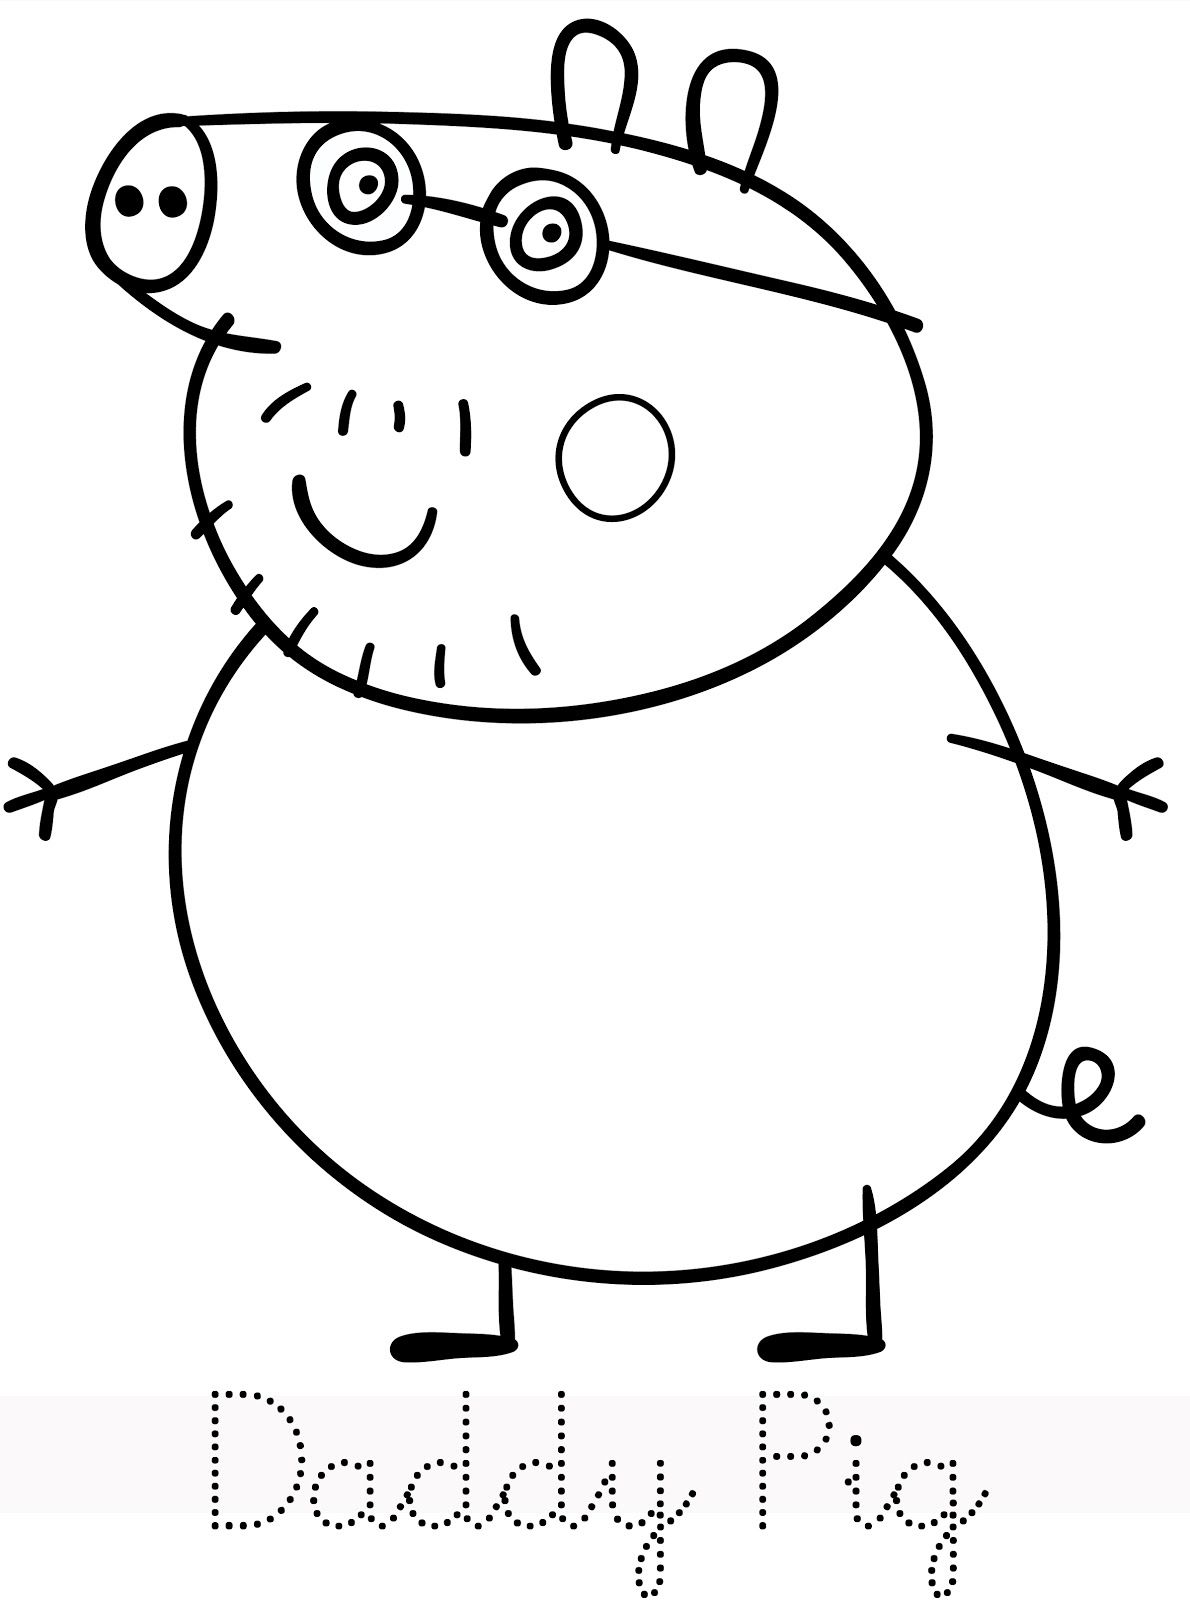 Family Of Peppa Pig Peppa Pig Coloring Pages Peppa Pig